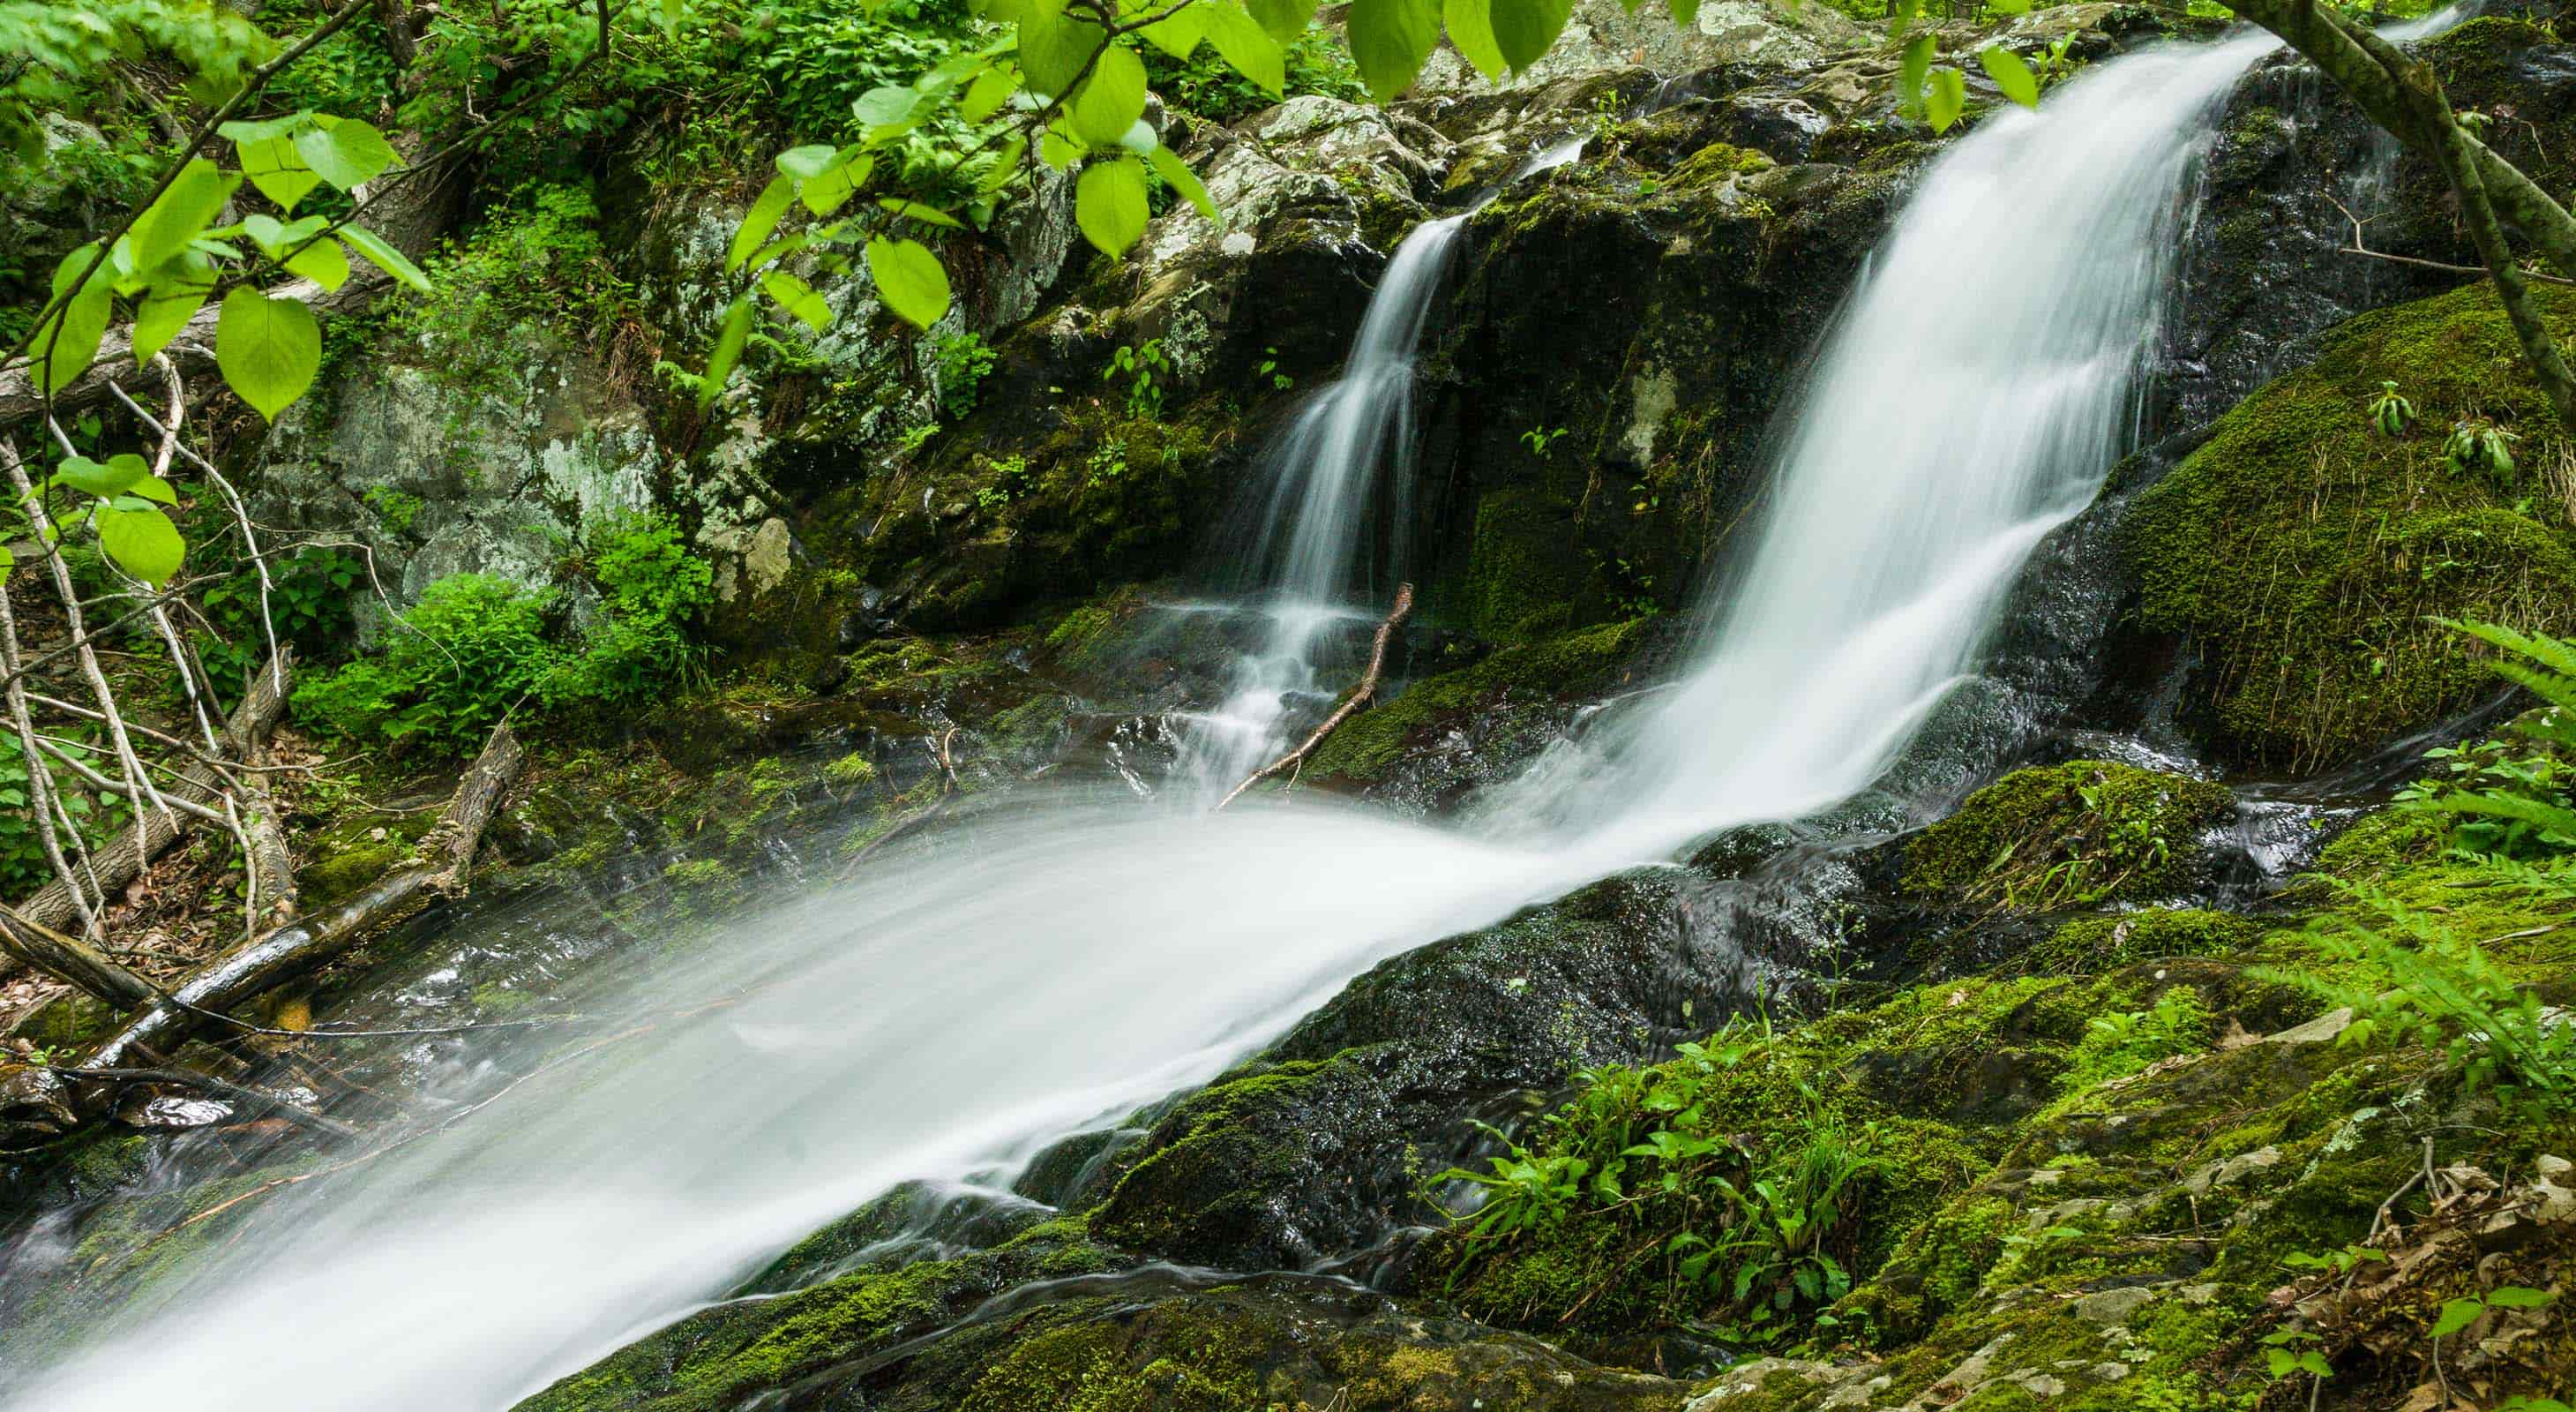 A small waterfall at Shenandoah National Park